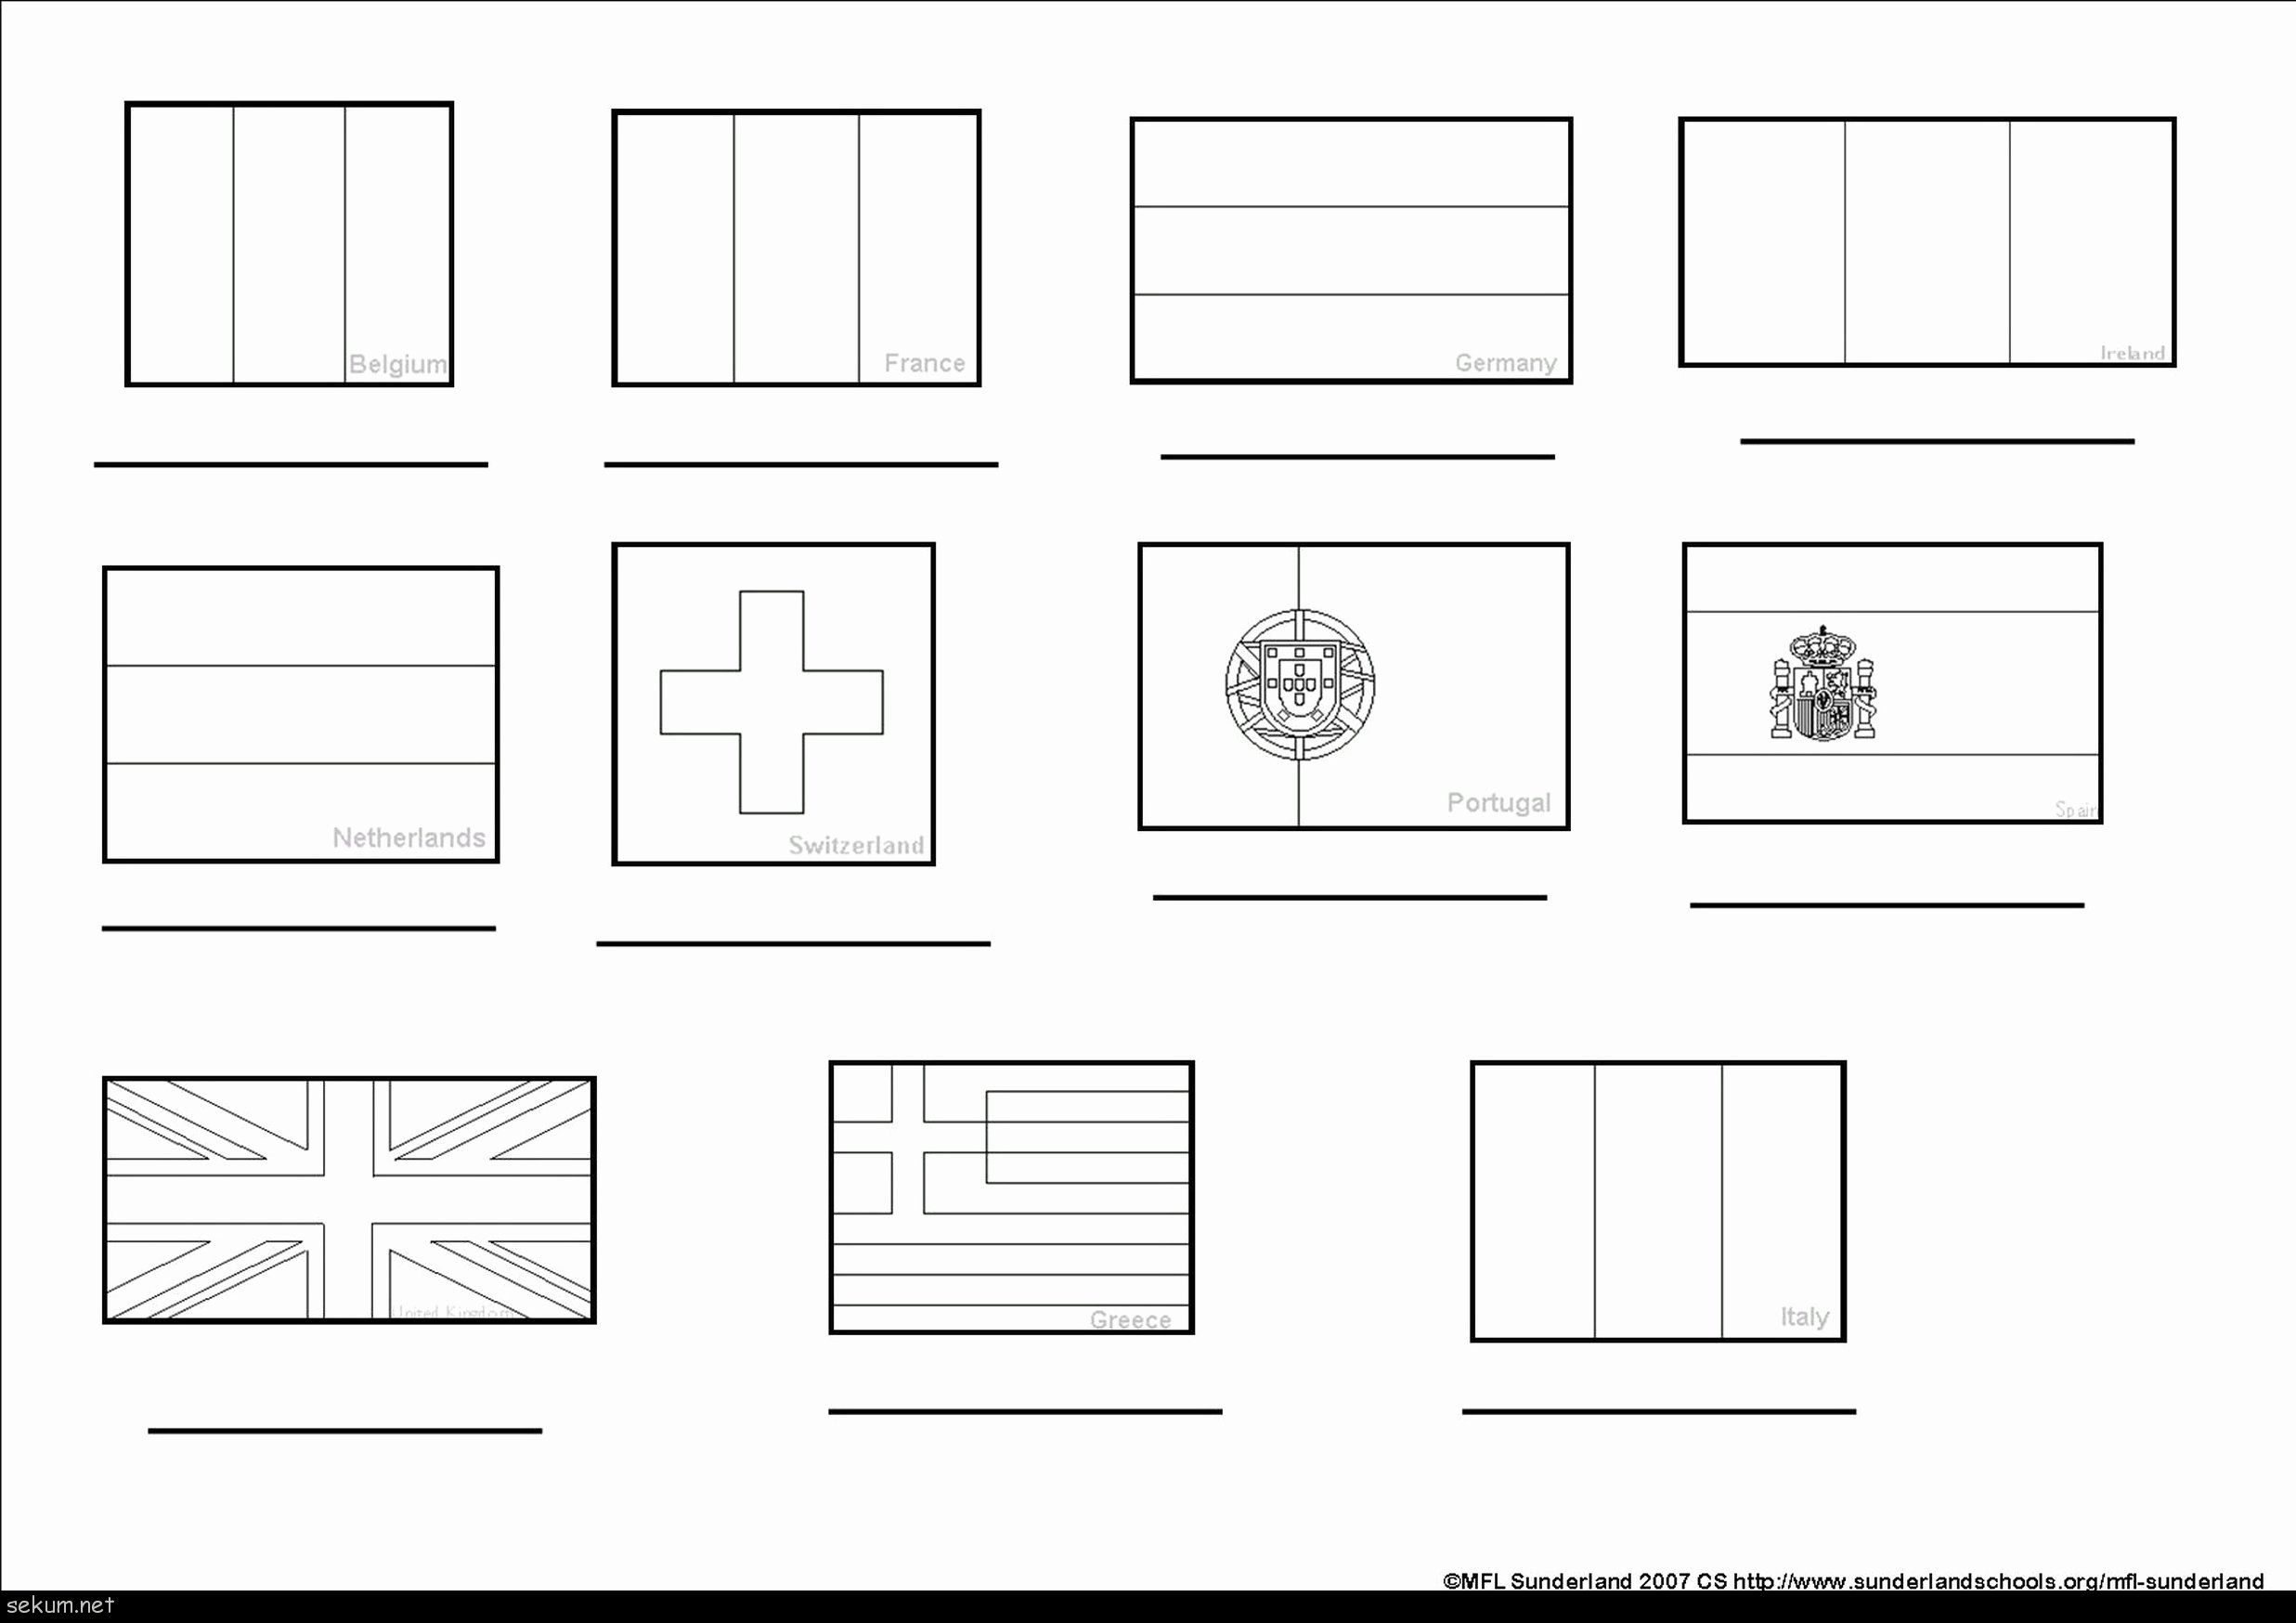 Spanish Flag Coloring Page New Spanish Flag Coloring Pages